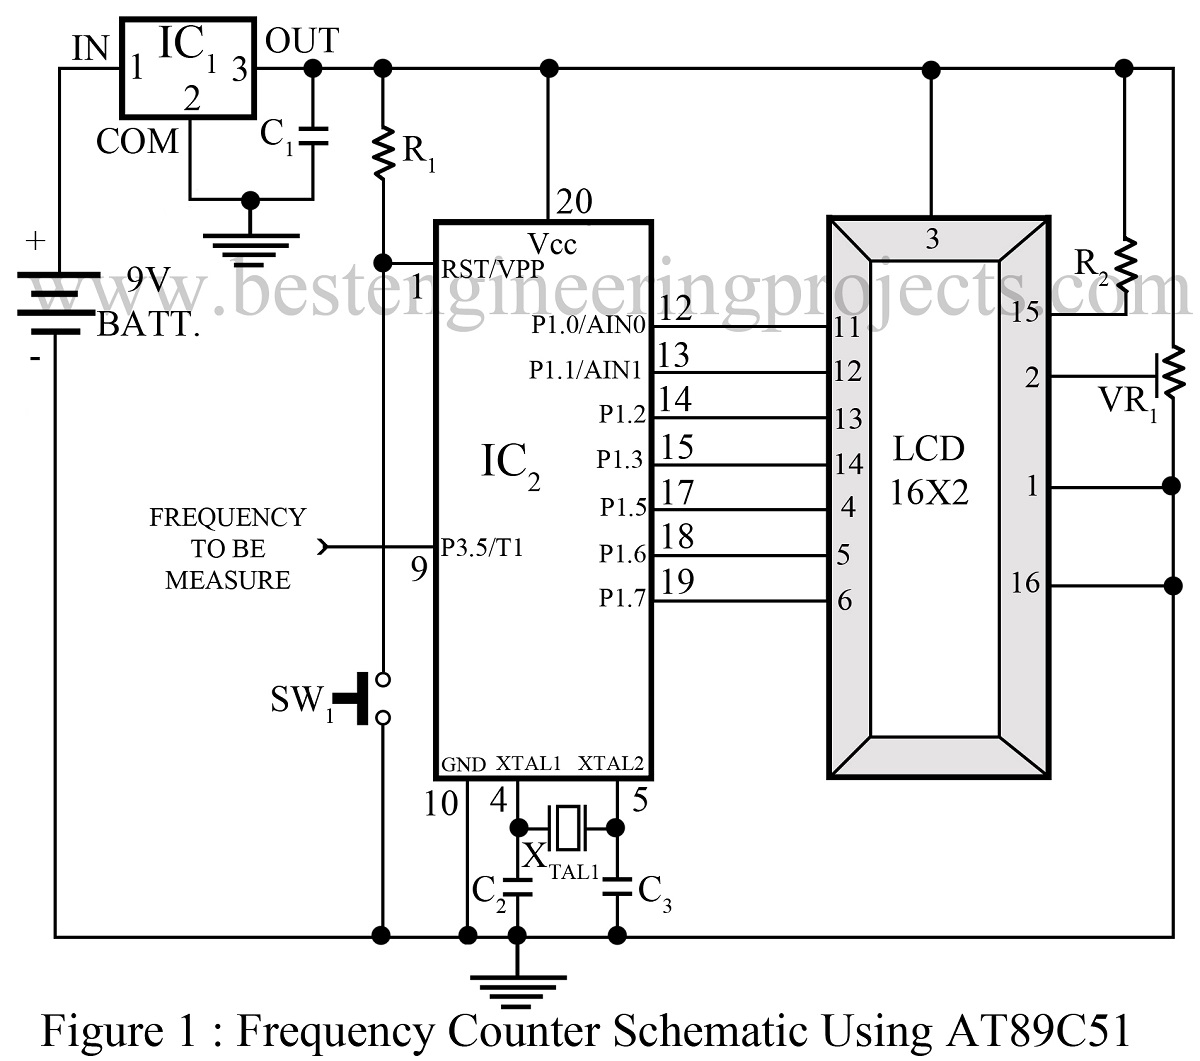 hight resolution of frequency counter schematic using microcontroller at89c51 circuit diagram of 89c51 programmer circuit diagram of 89c51